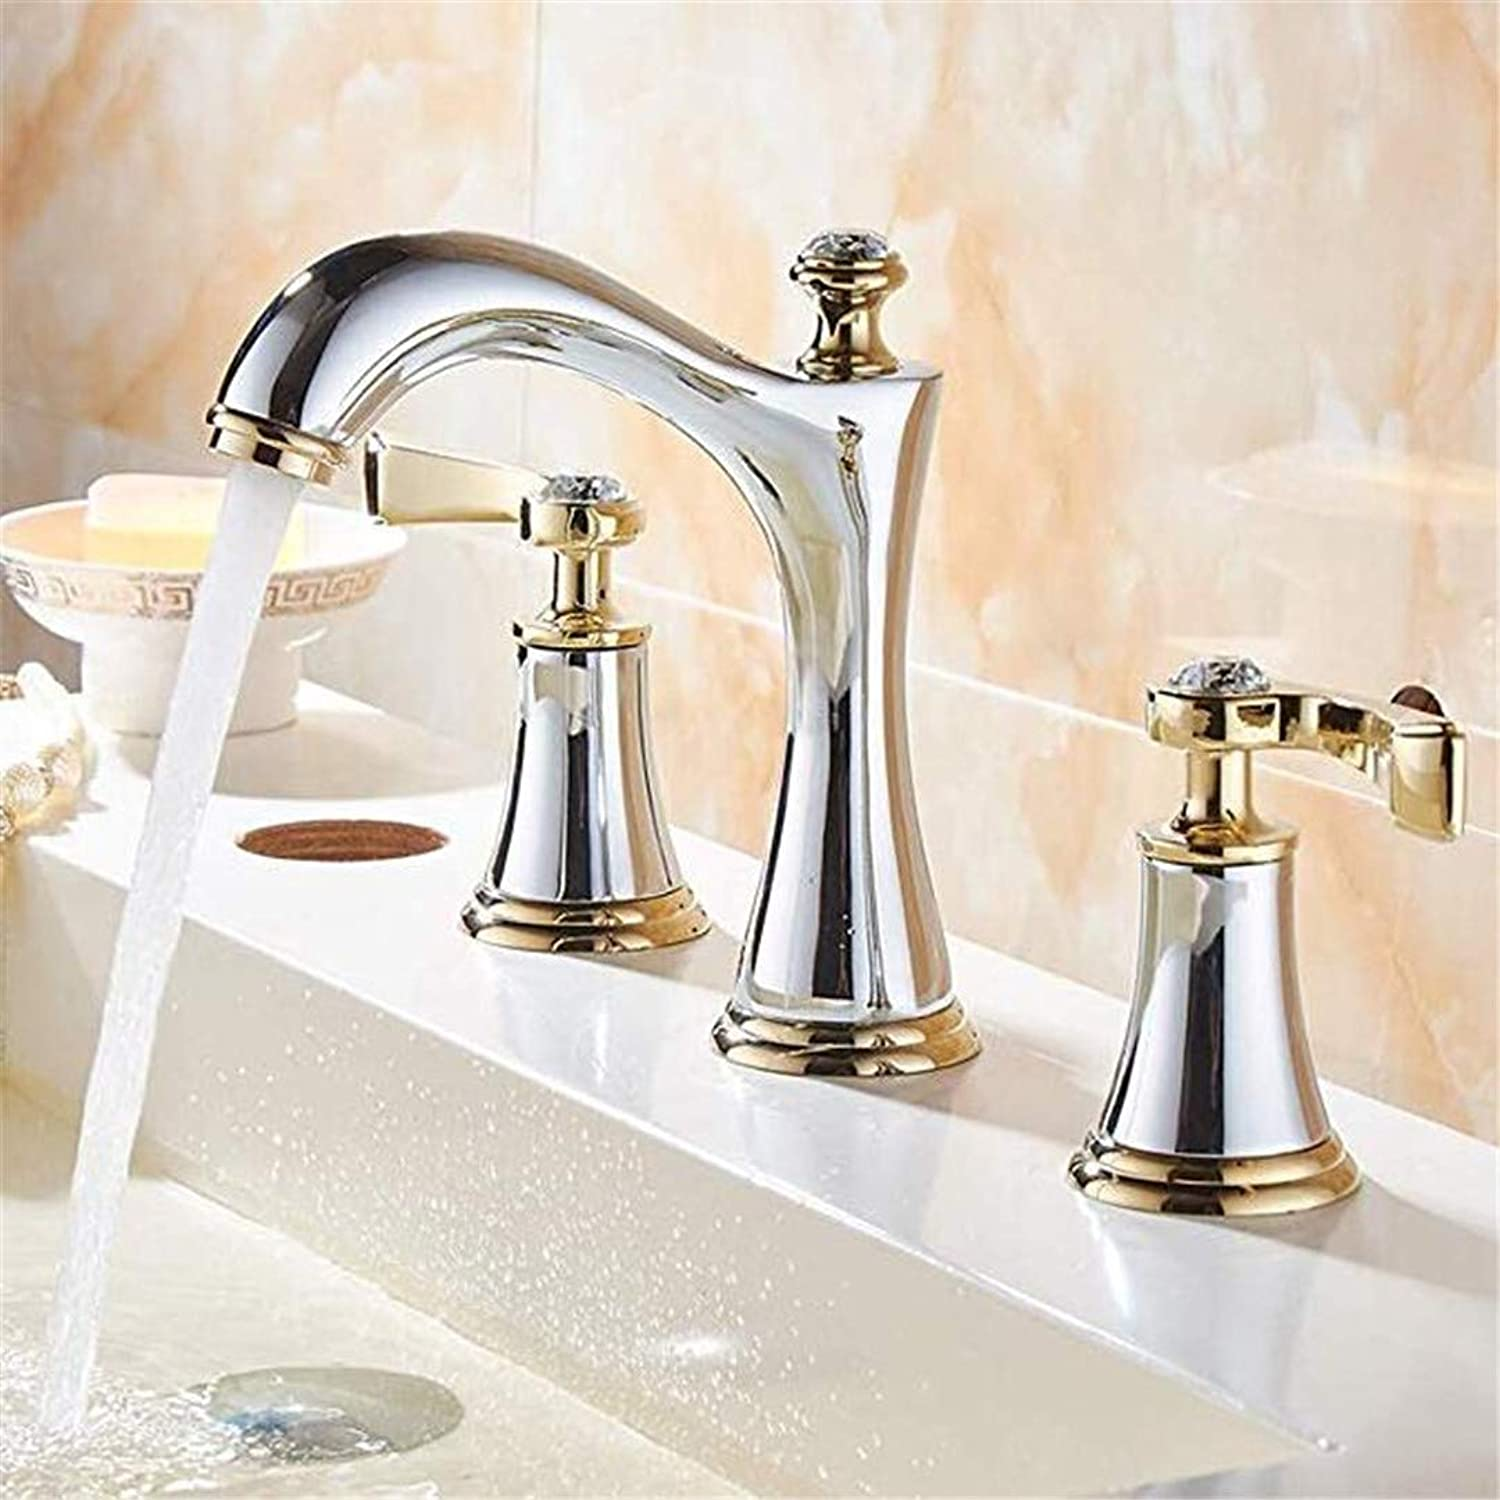 Oudan Taps Kitchen Faucetbathroom Sink Tapeuropean-Style Bathroom Basin Water Cooling and Hot Mixing Faucet Three-Hole Alloy Sink Faucet Split Faucet Set Multi-Functional Bathtub Faucet